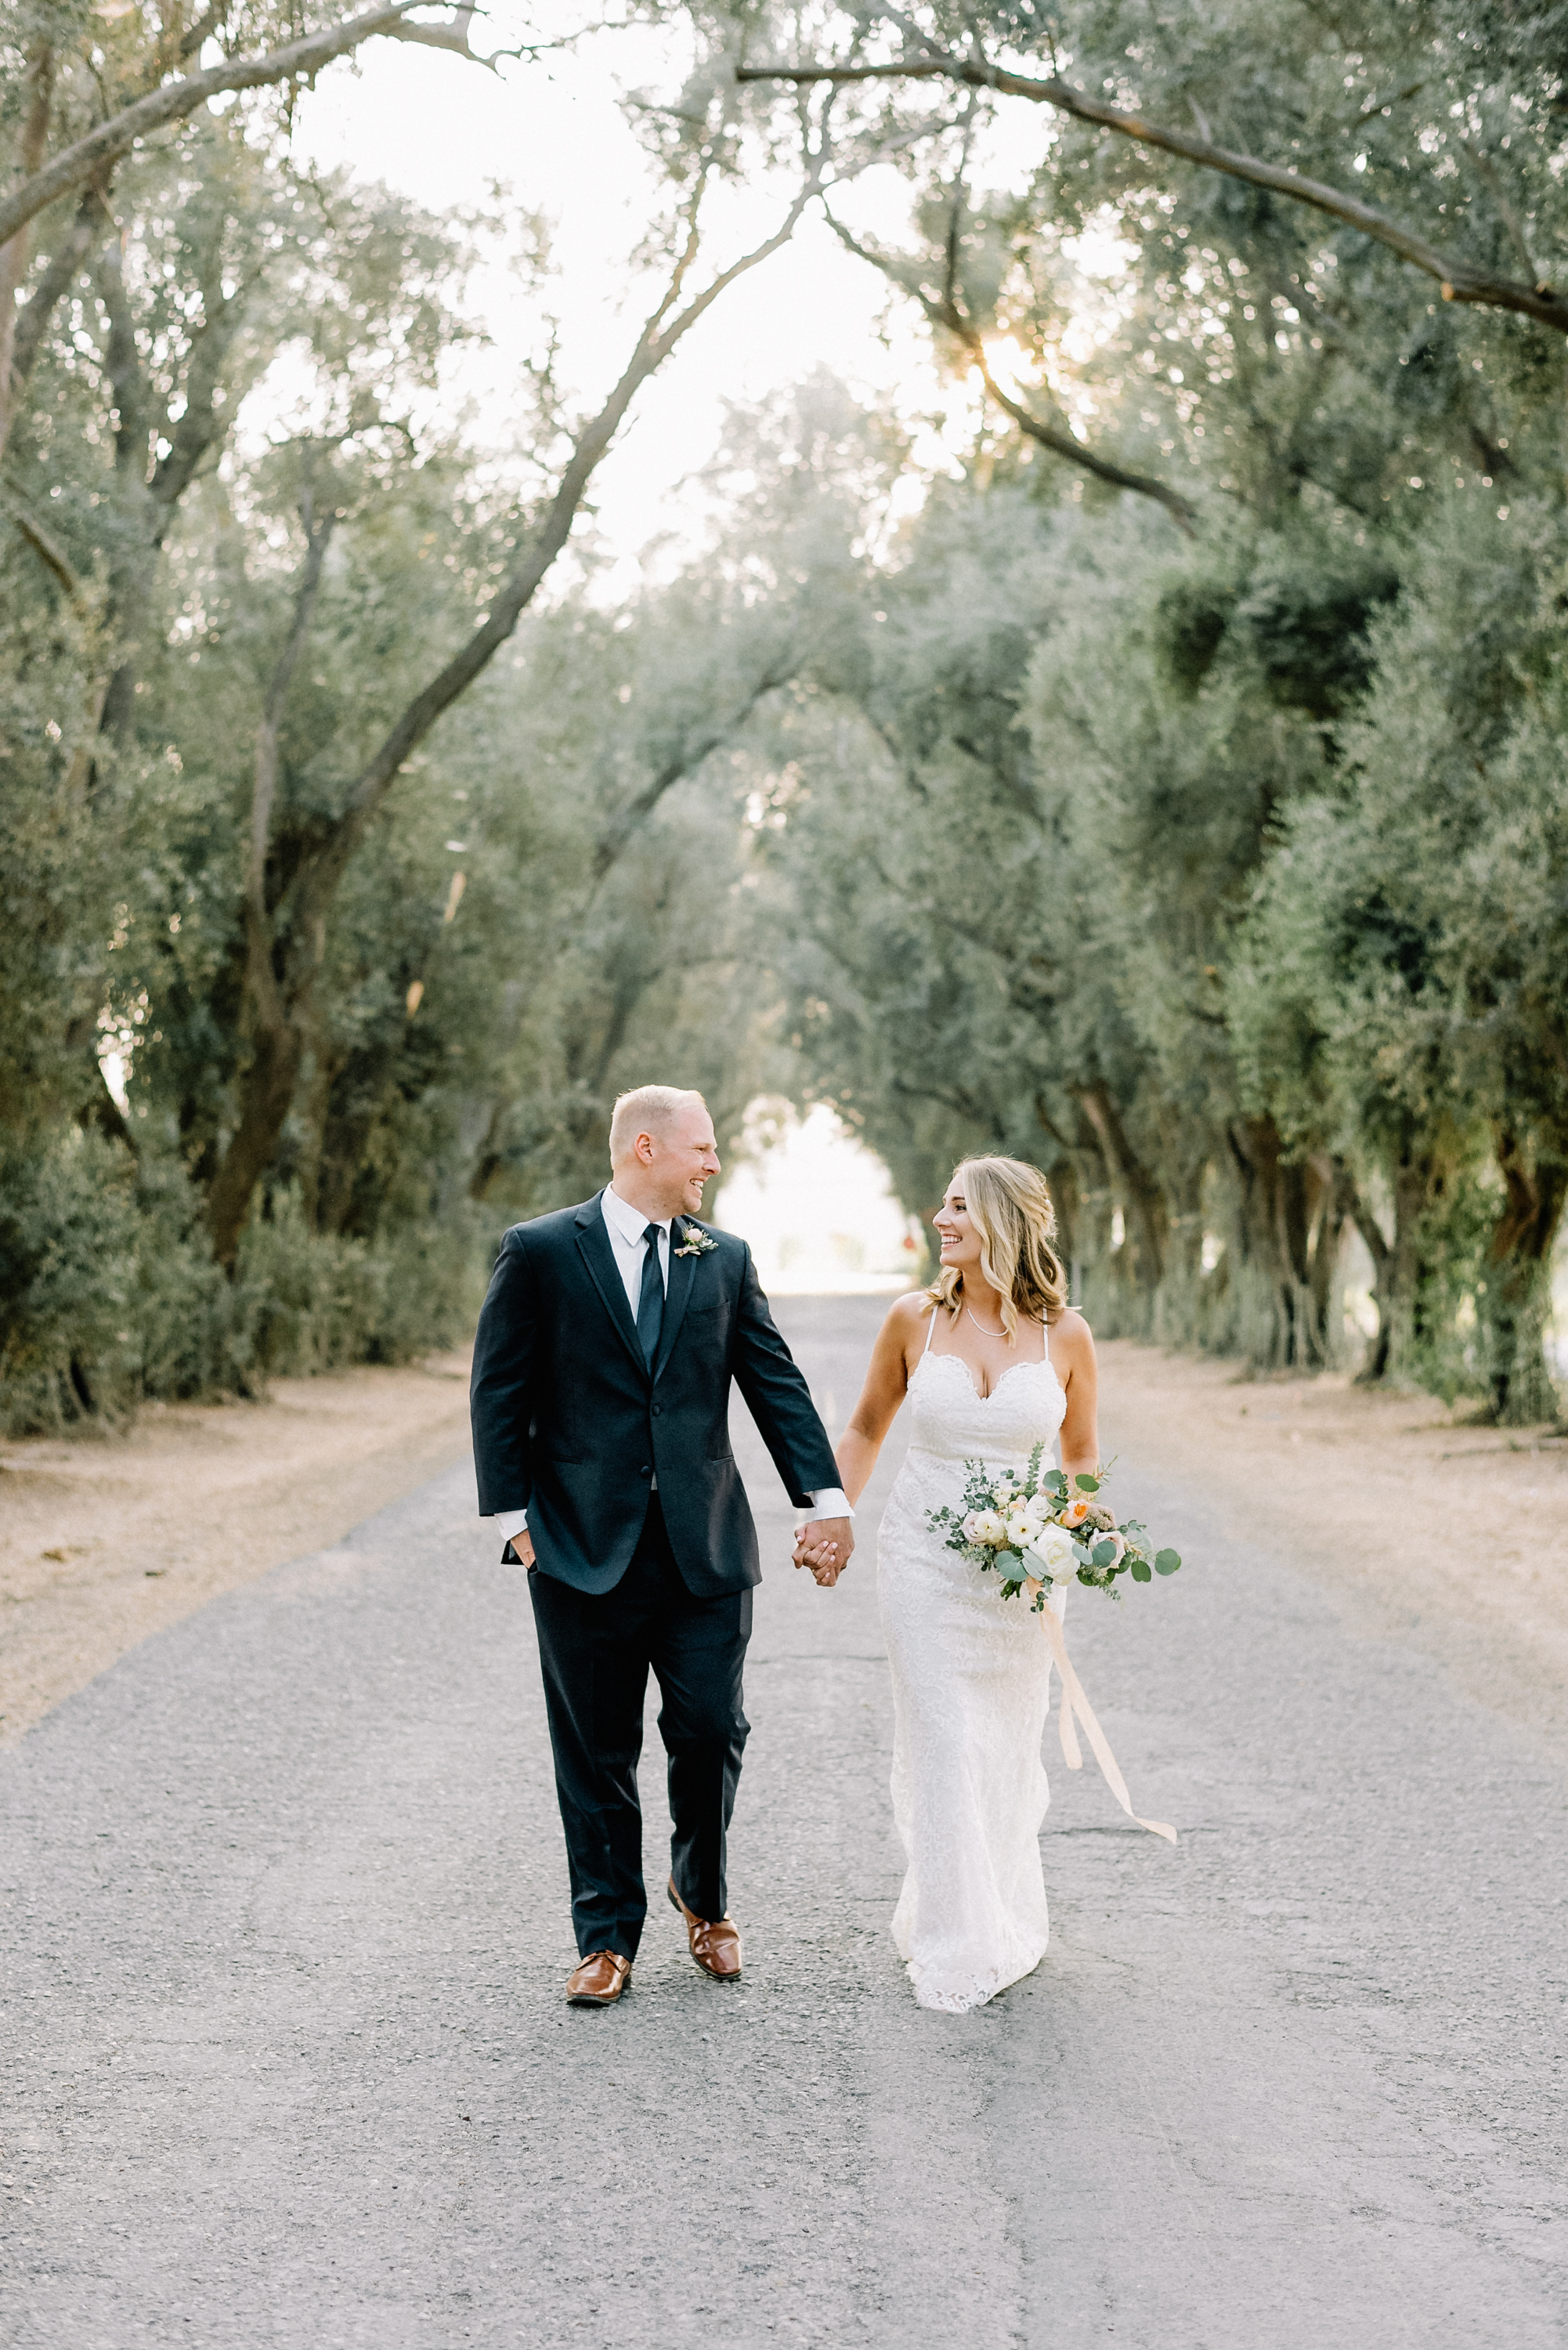 Lindsey + Baylor | The Maples | Woodland, CA